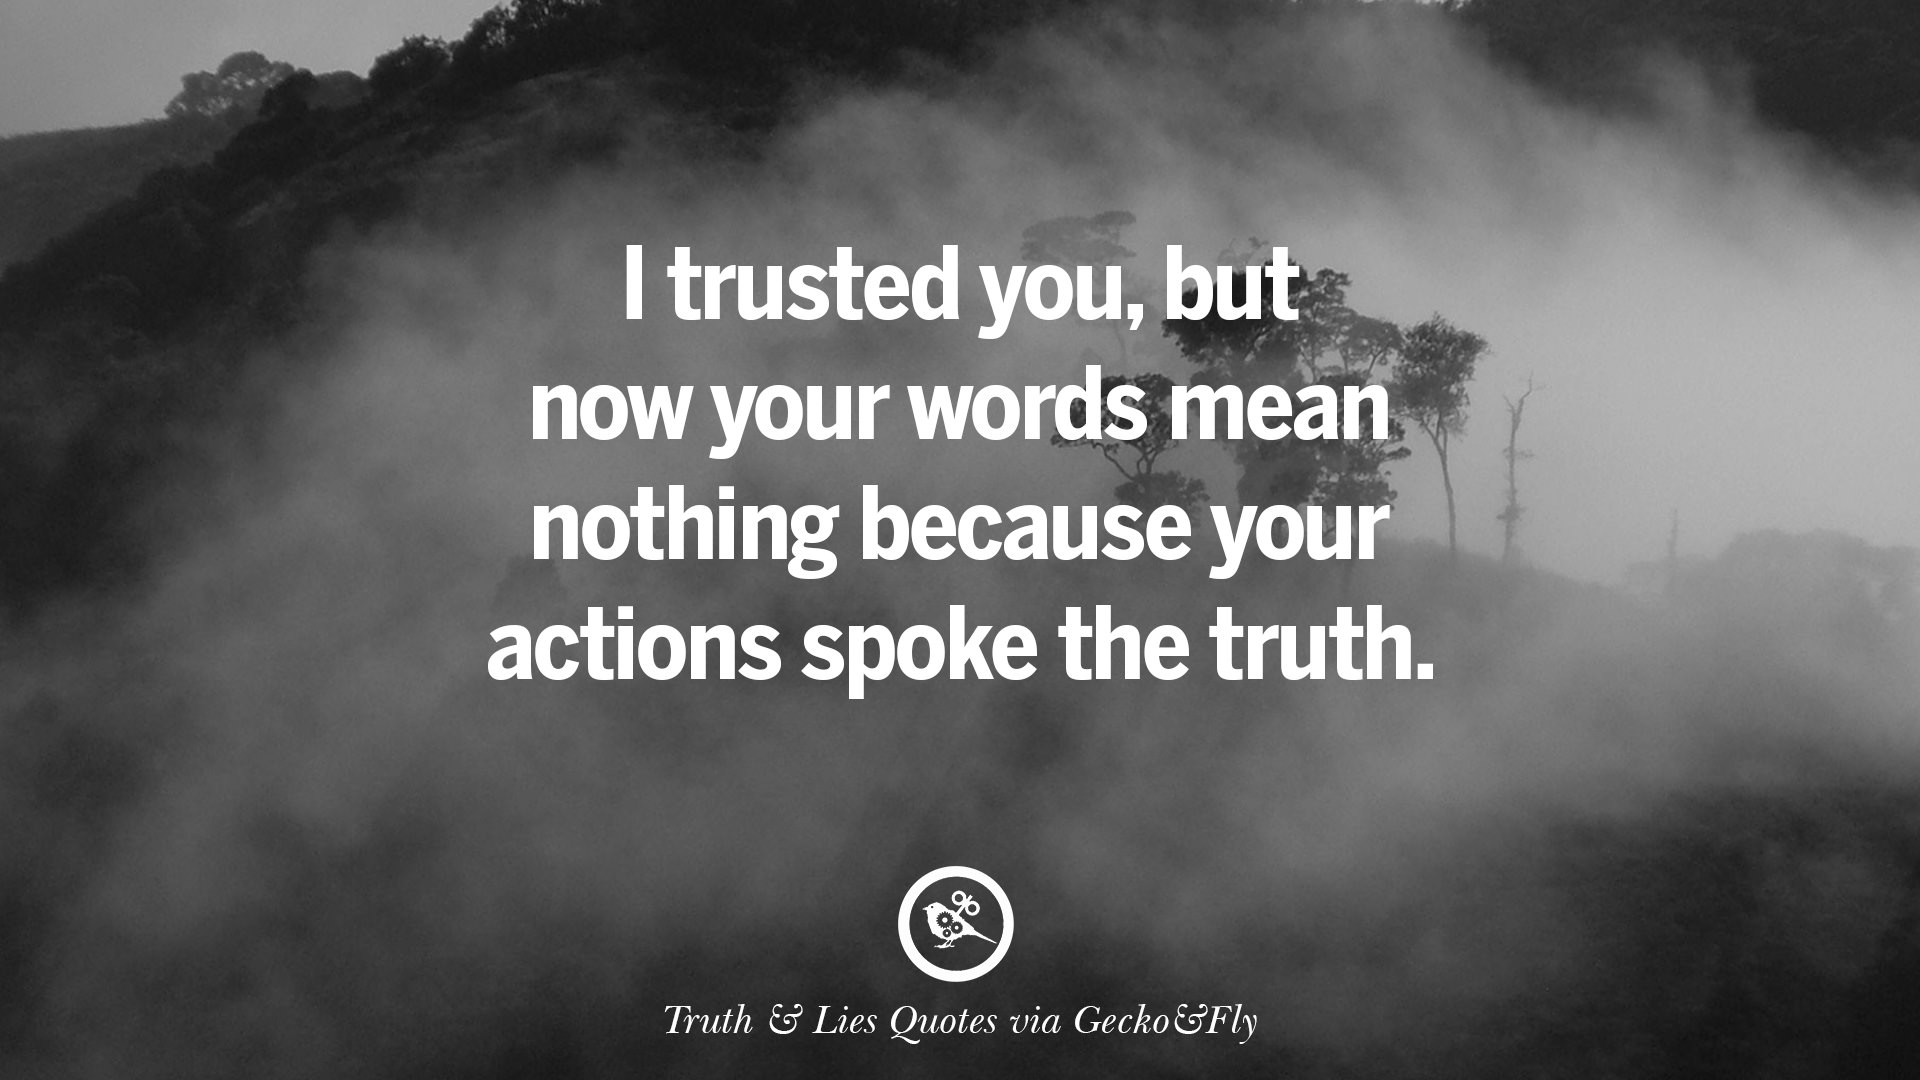 Words Mean Nothing Quotes: 20 Quotes On Truth, Lies, Deception And Being Honest